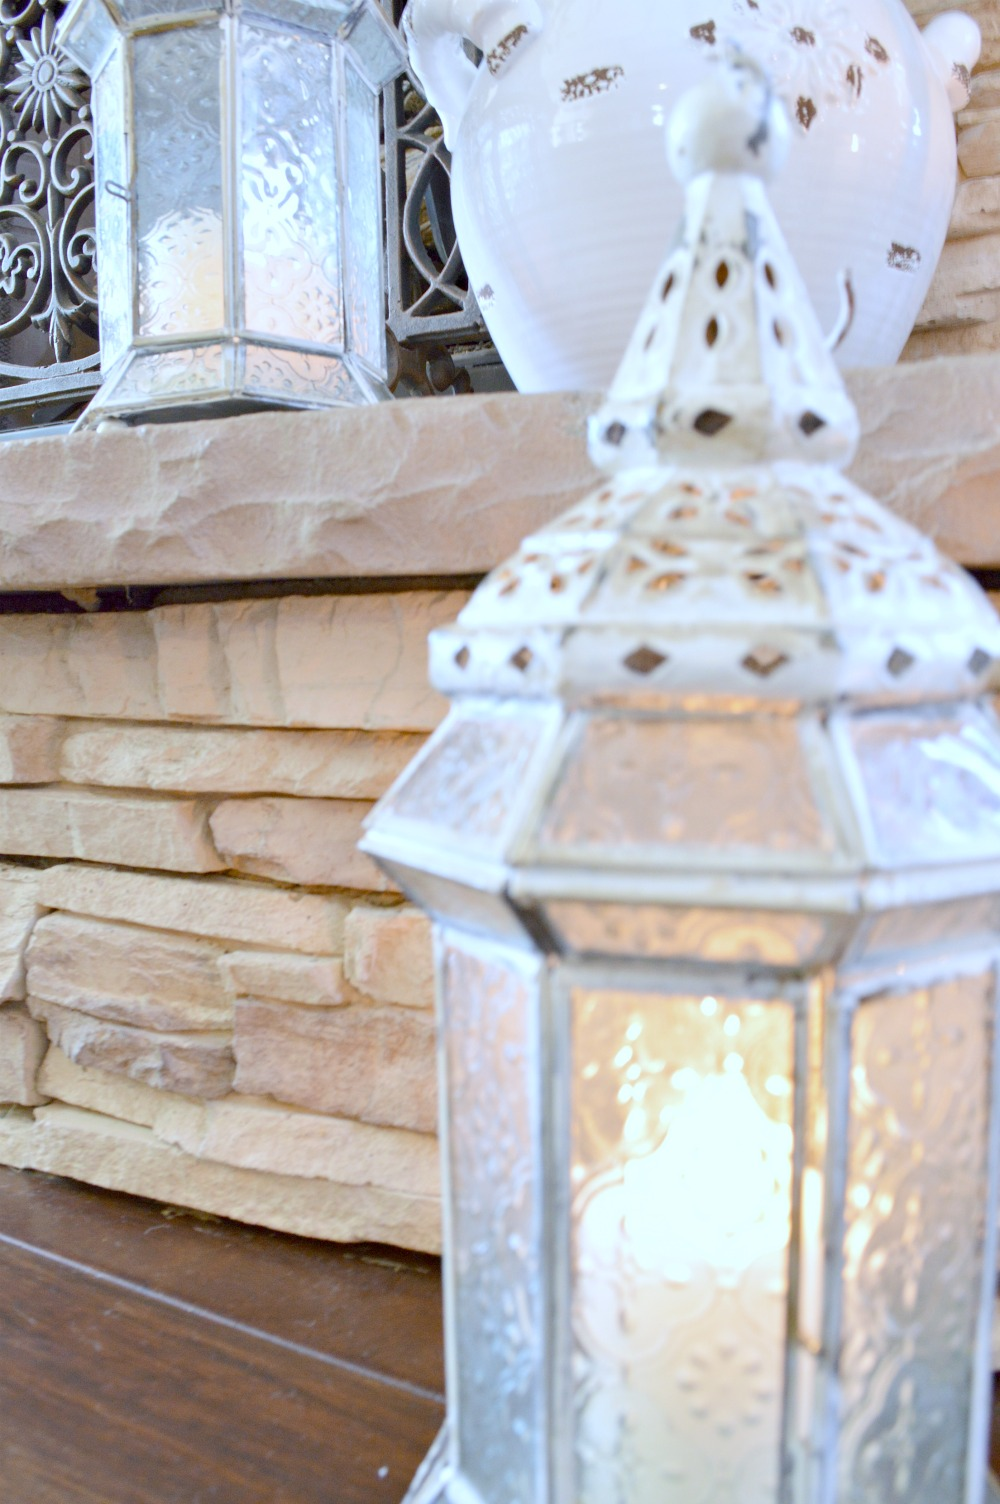 Don't throw away an old lantern, paint it!